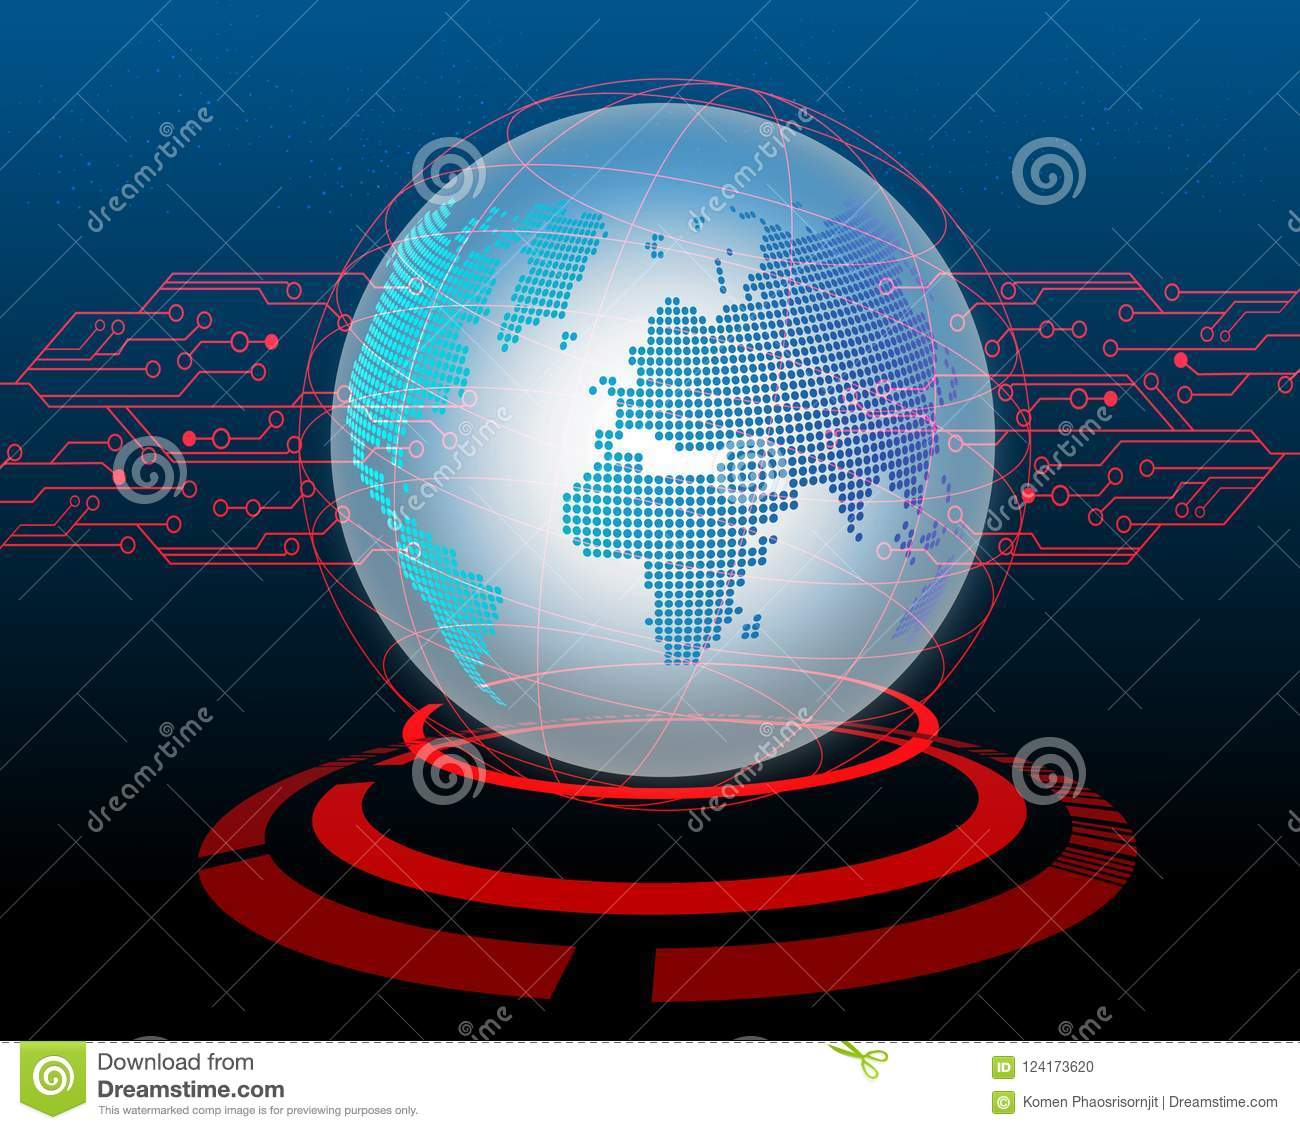 World map Cyber attack by hacker Circuit concept background.